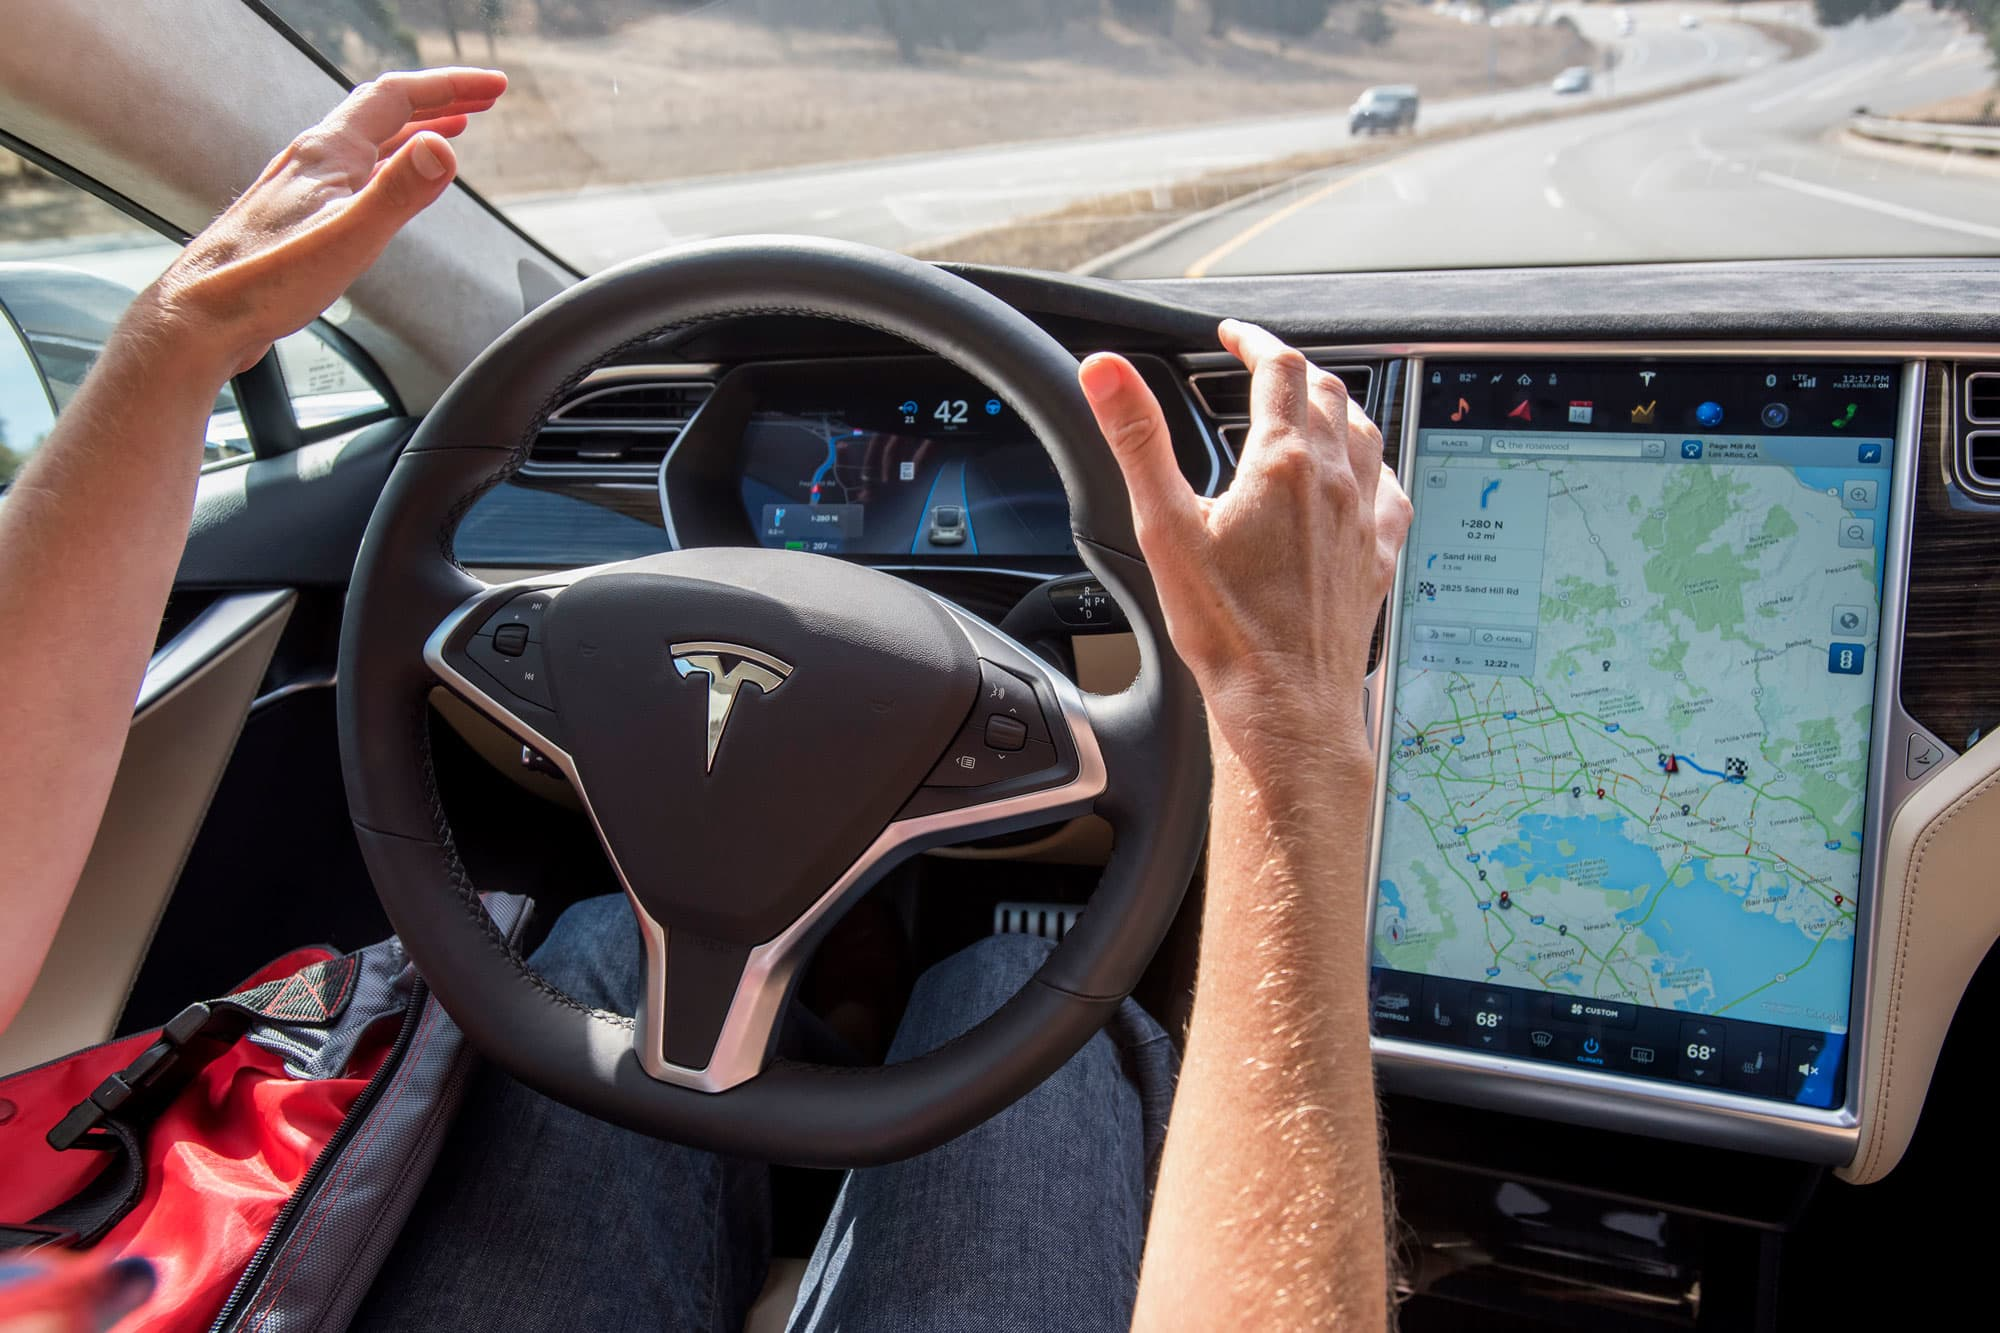 Munich court rules that Tesla misled consumers on Autopilot and FSD 2